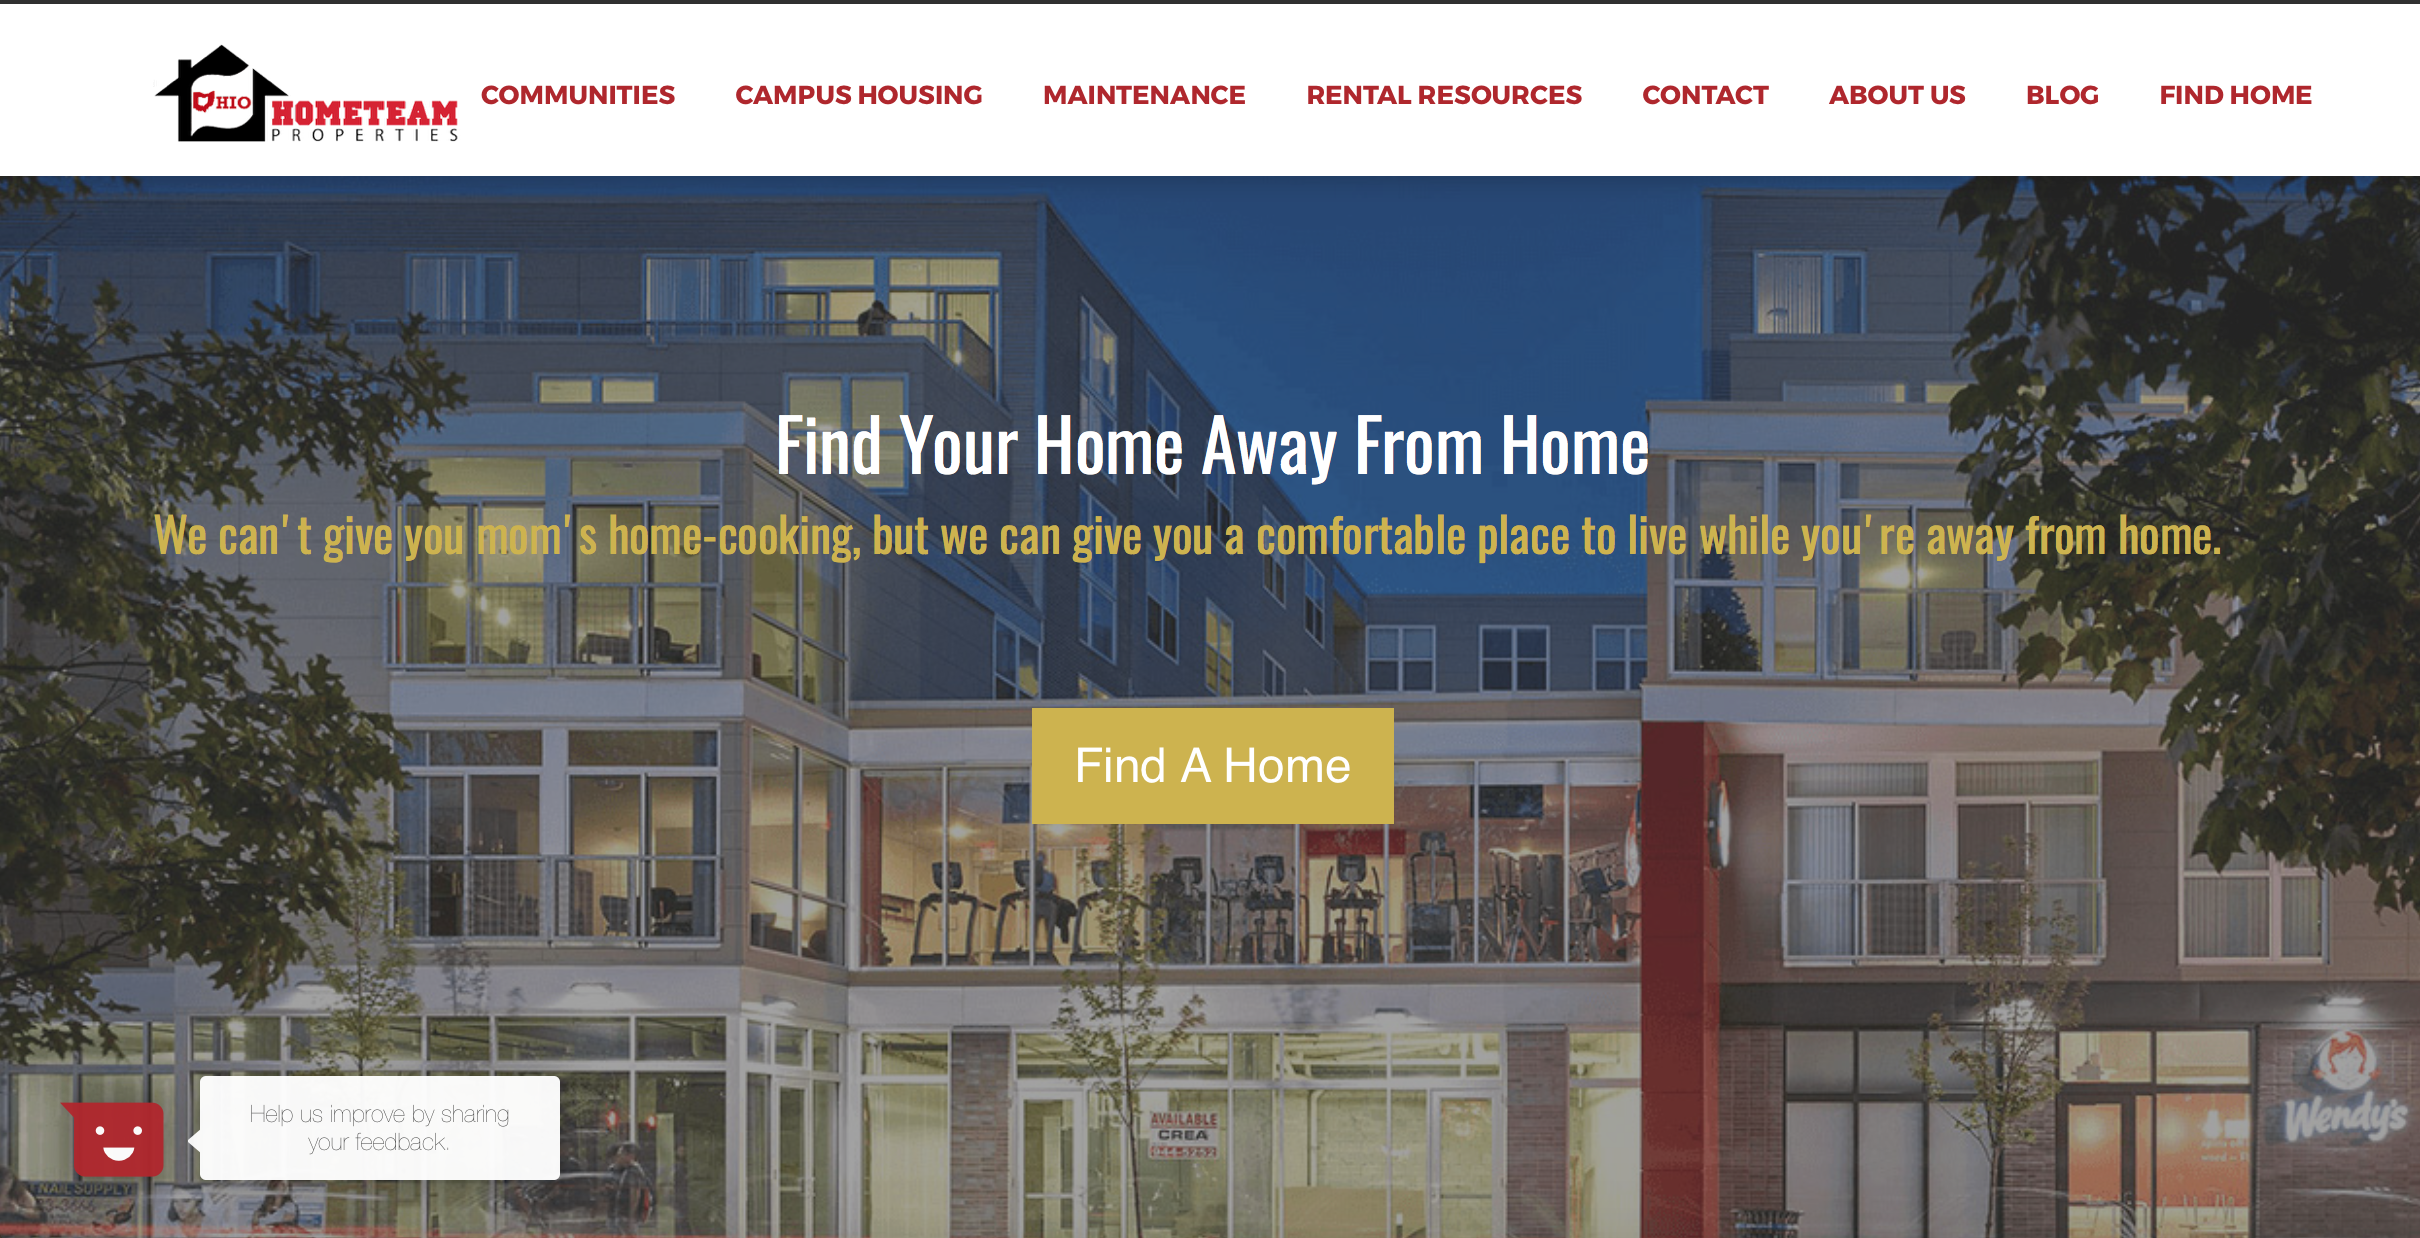 hometeam properties case study